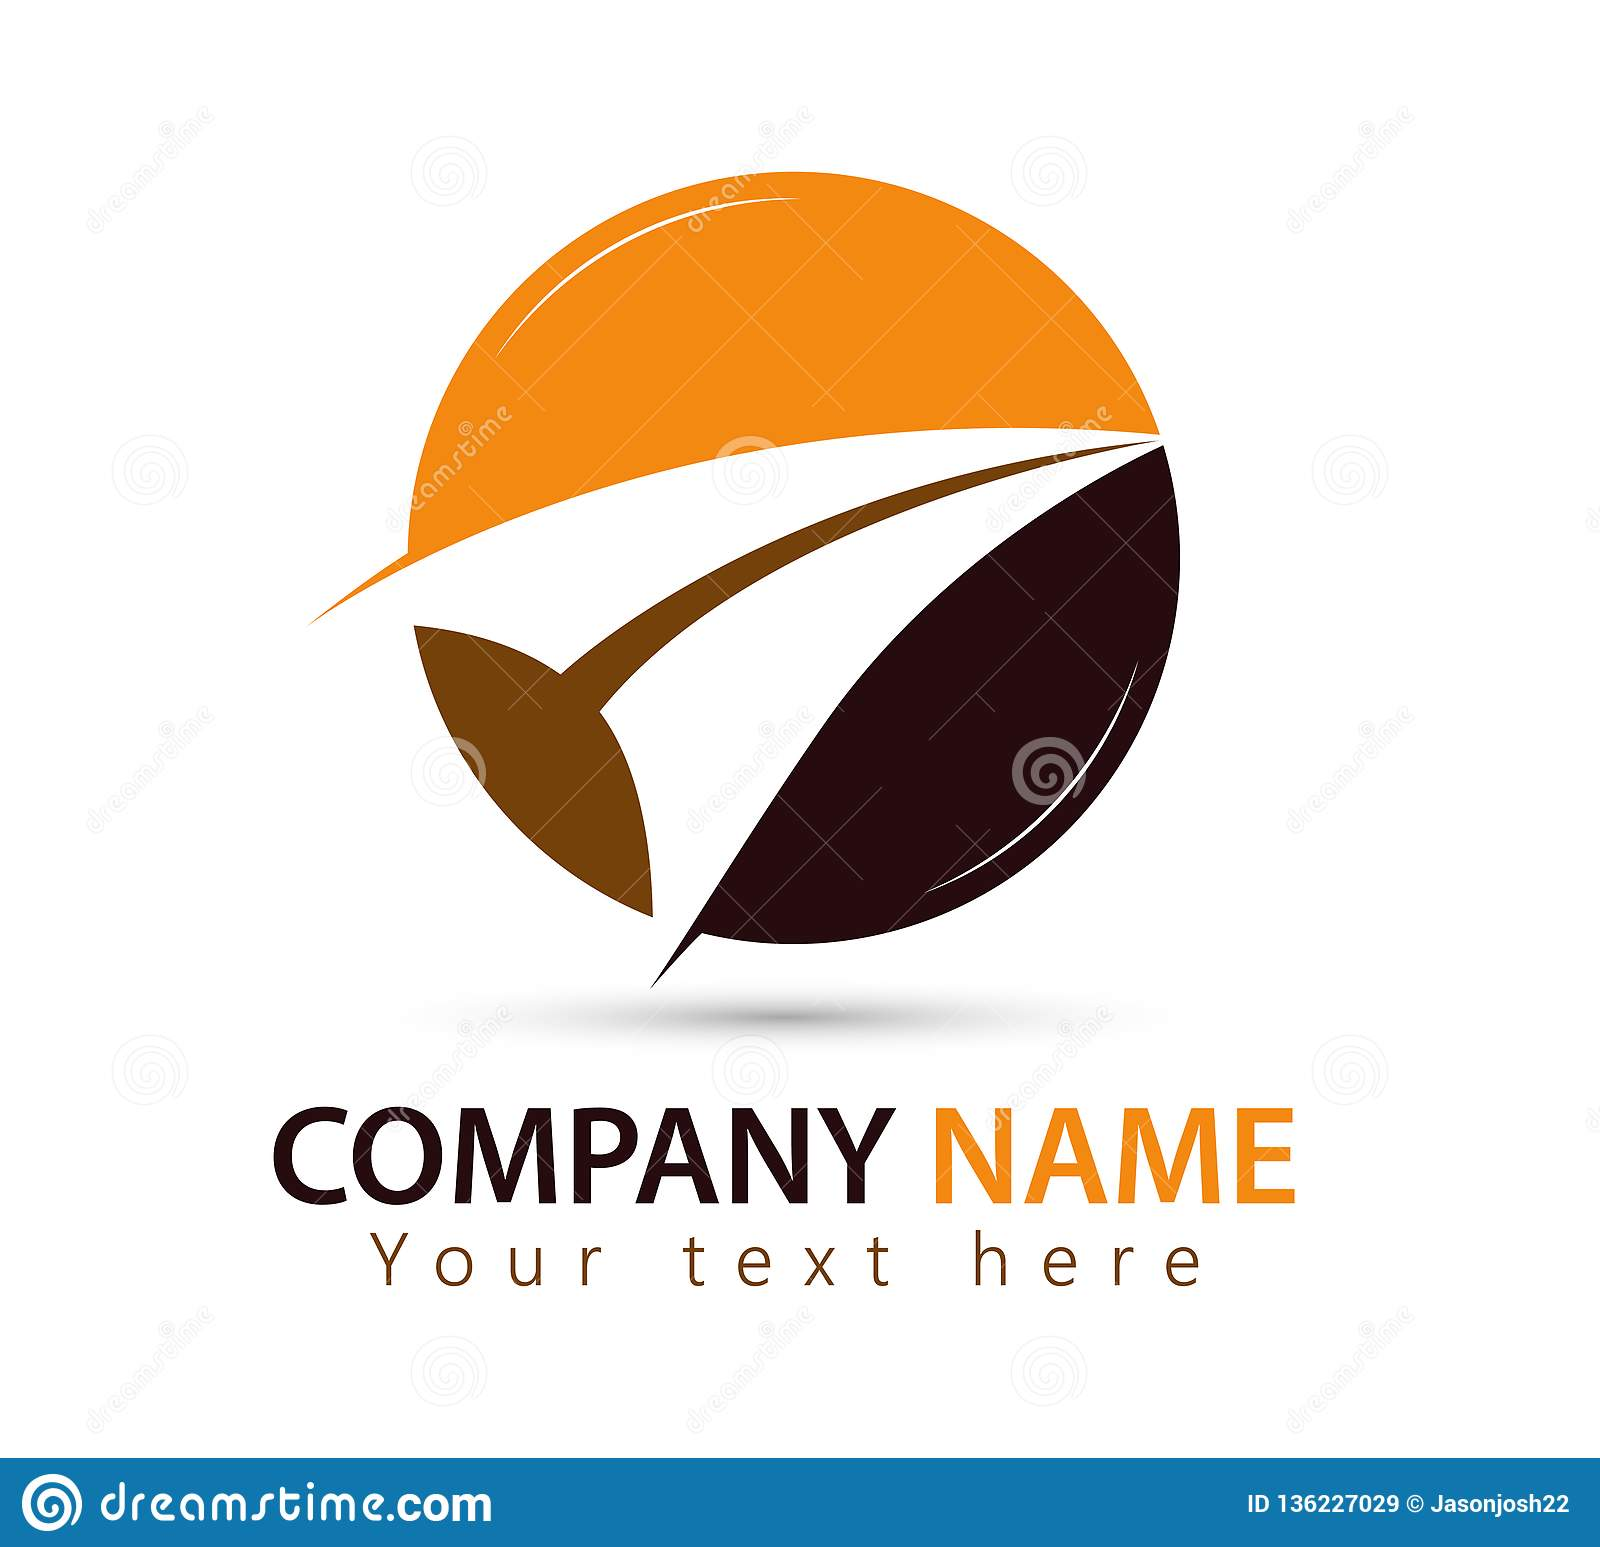 Marketing logo Arrow symbol logo design element